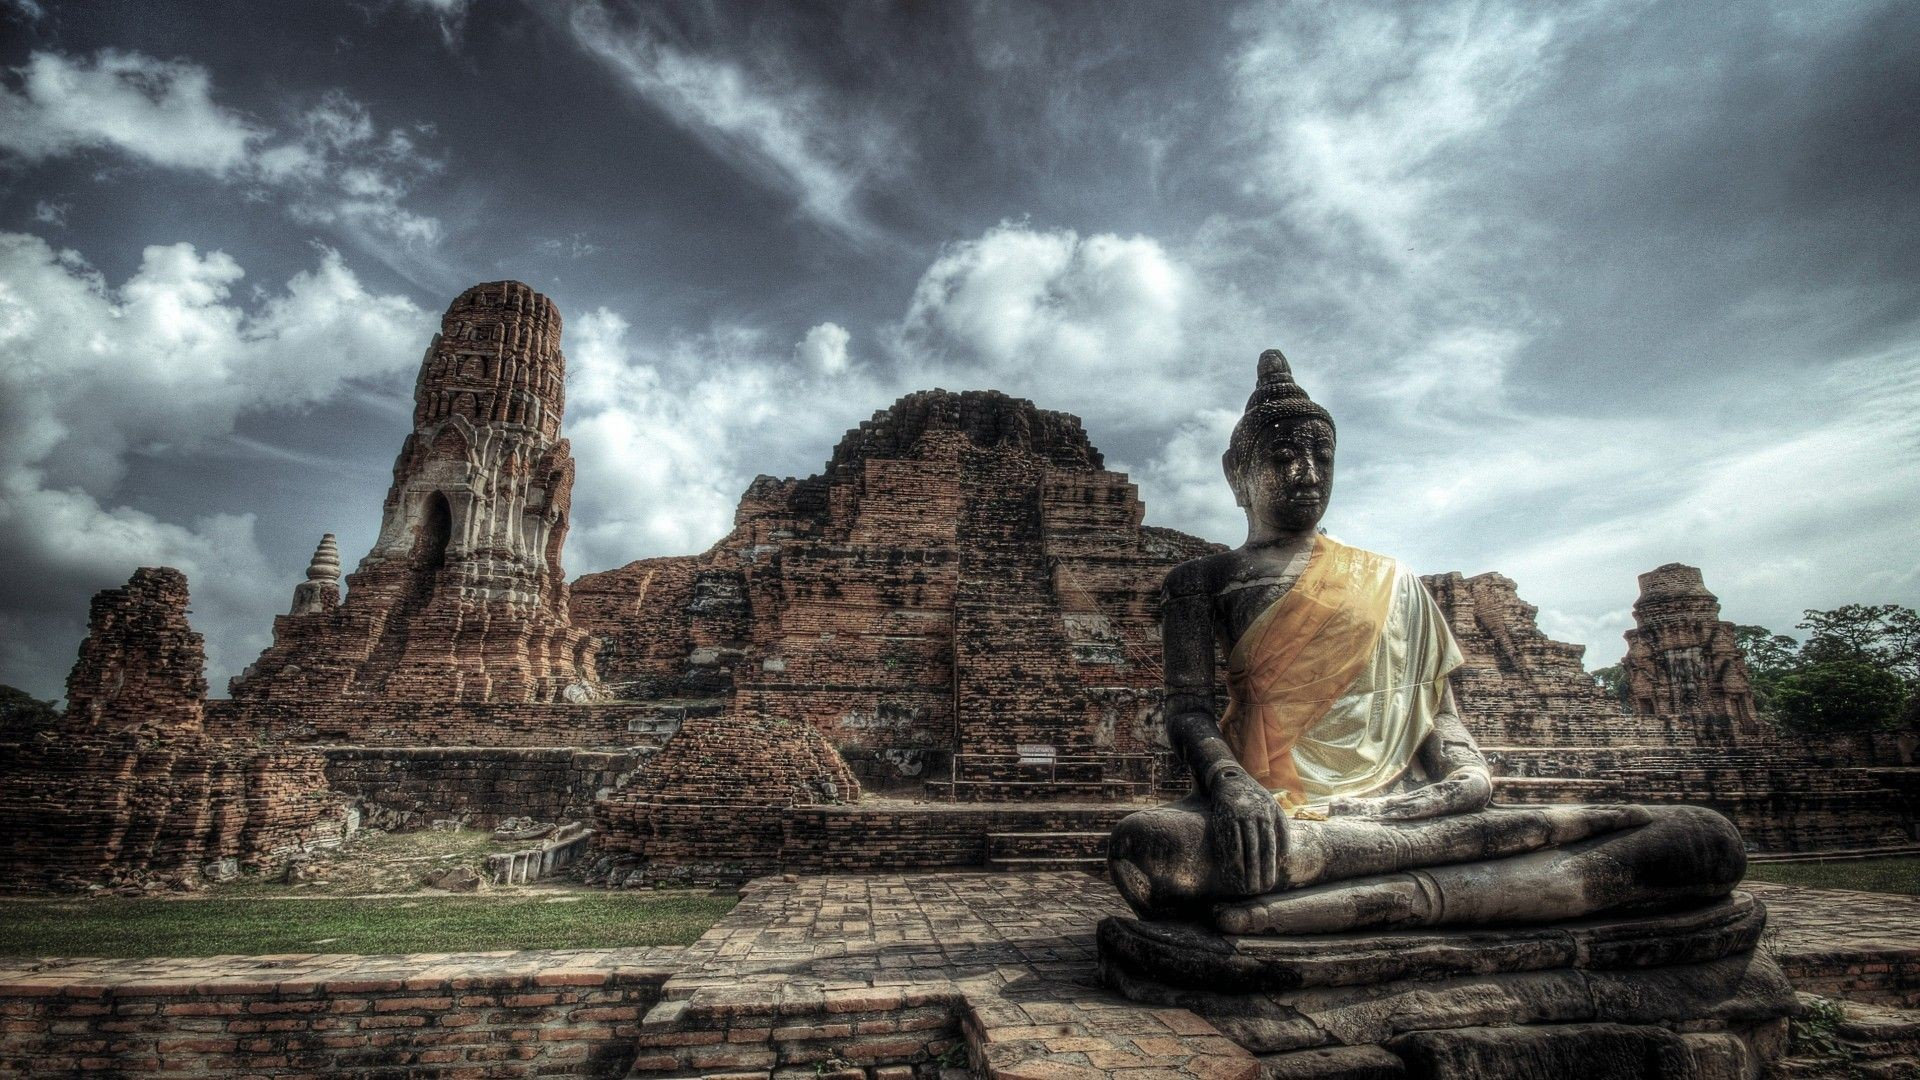 Res: 1920x1080, Buddha - photo wallpapers and pictures of Buddha | Buddha images .